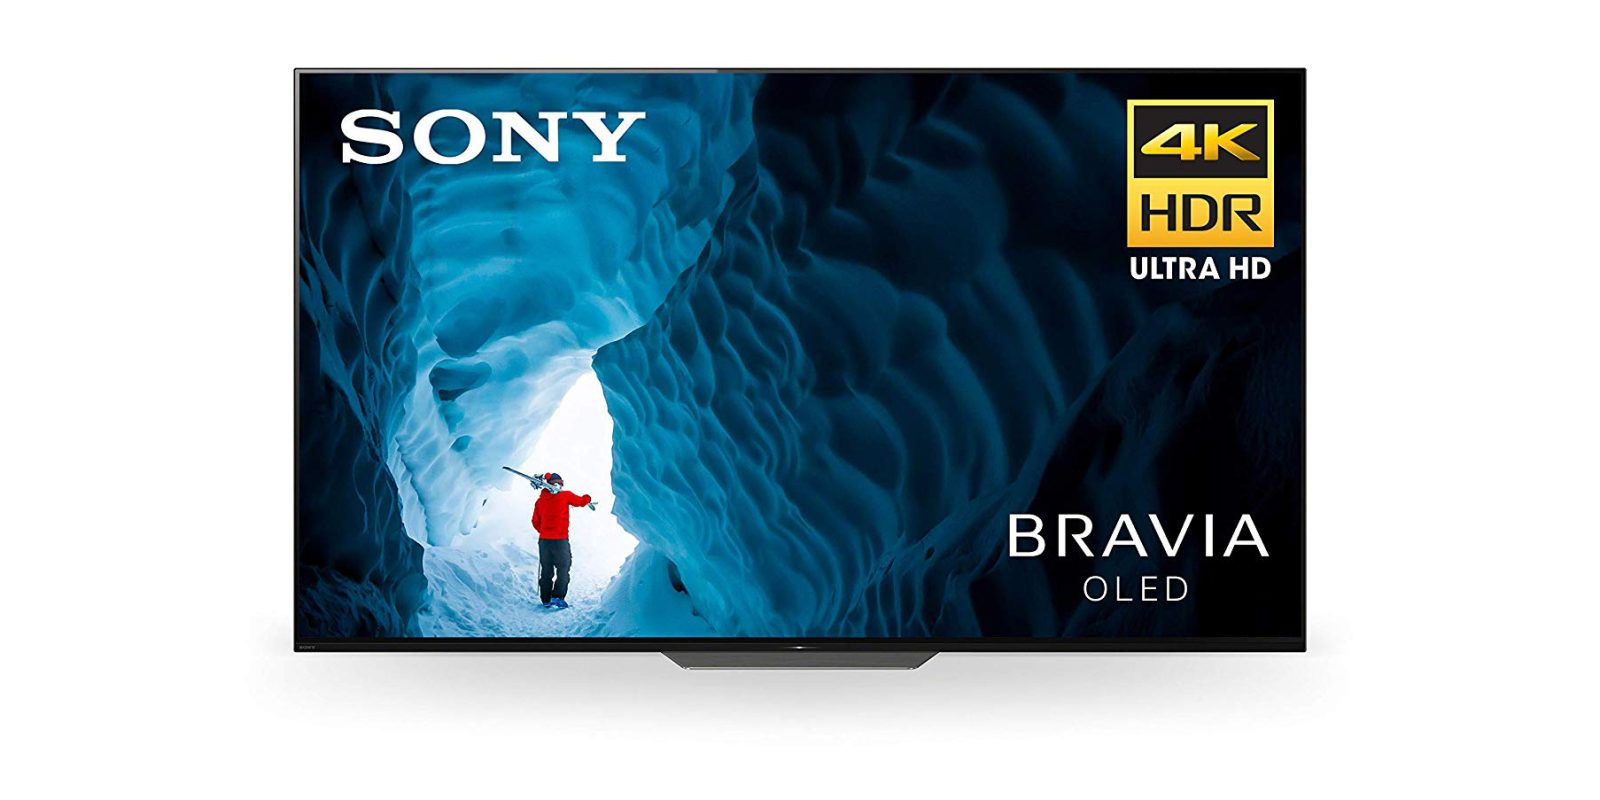 Sony's 55-inch UHDTV features 4K, OLED, HDR, more for $1,399 (Reg. $1,700)